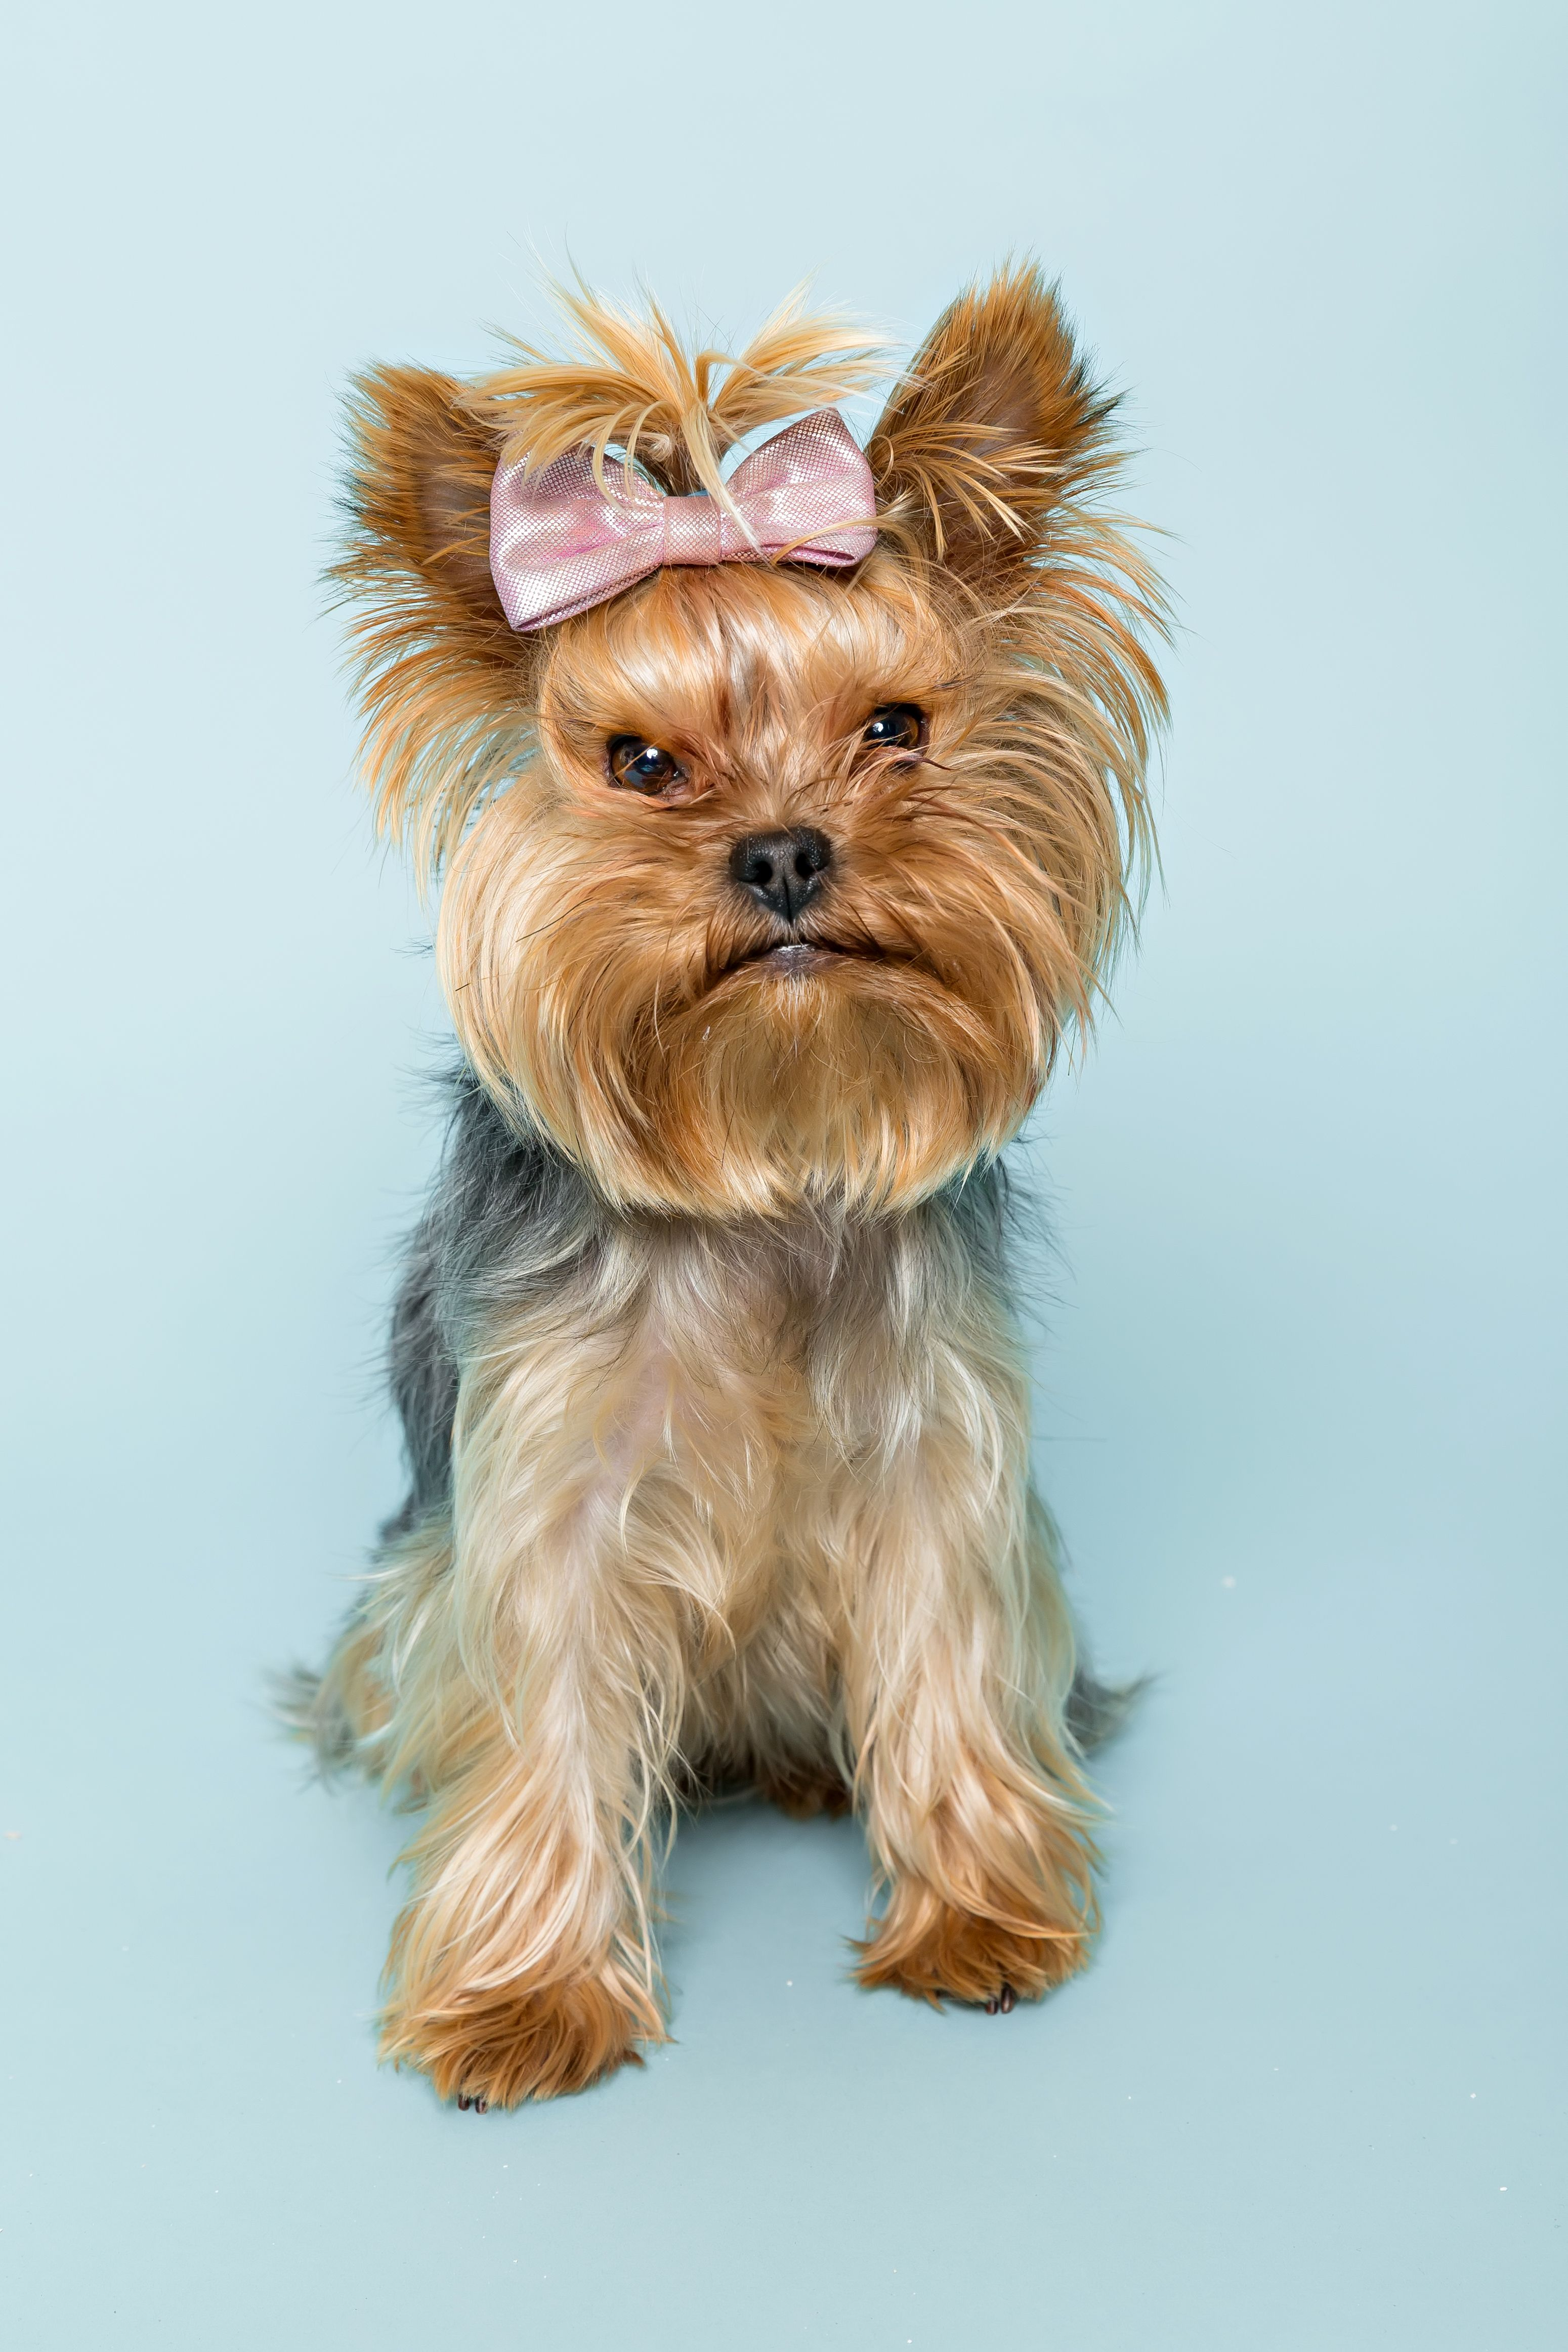 Mad For Cute Yorkshire Terrier With Pink Bow Over The Blue Background Puppy Dog Yorkie Yorkshire Terrier Yorkshire Terrier Yorkie